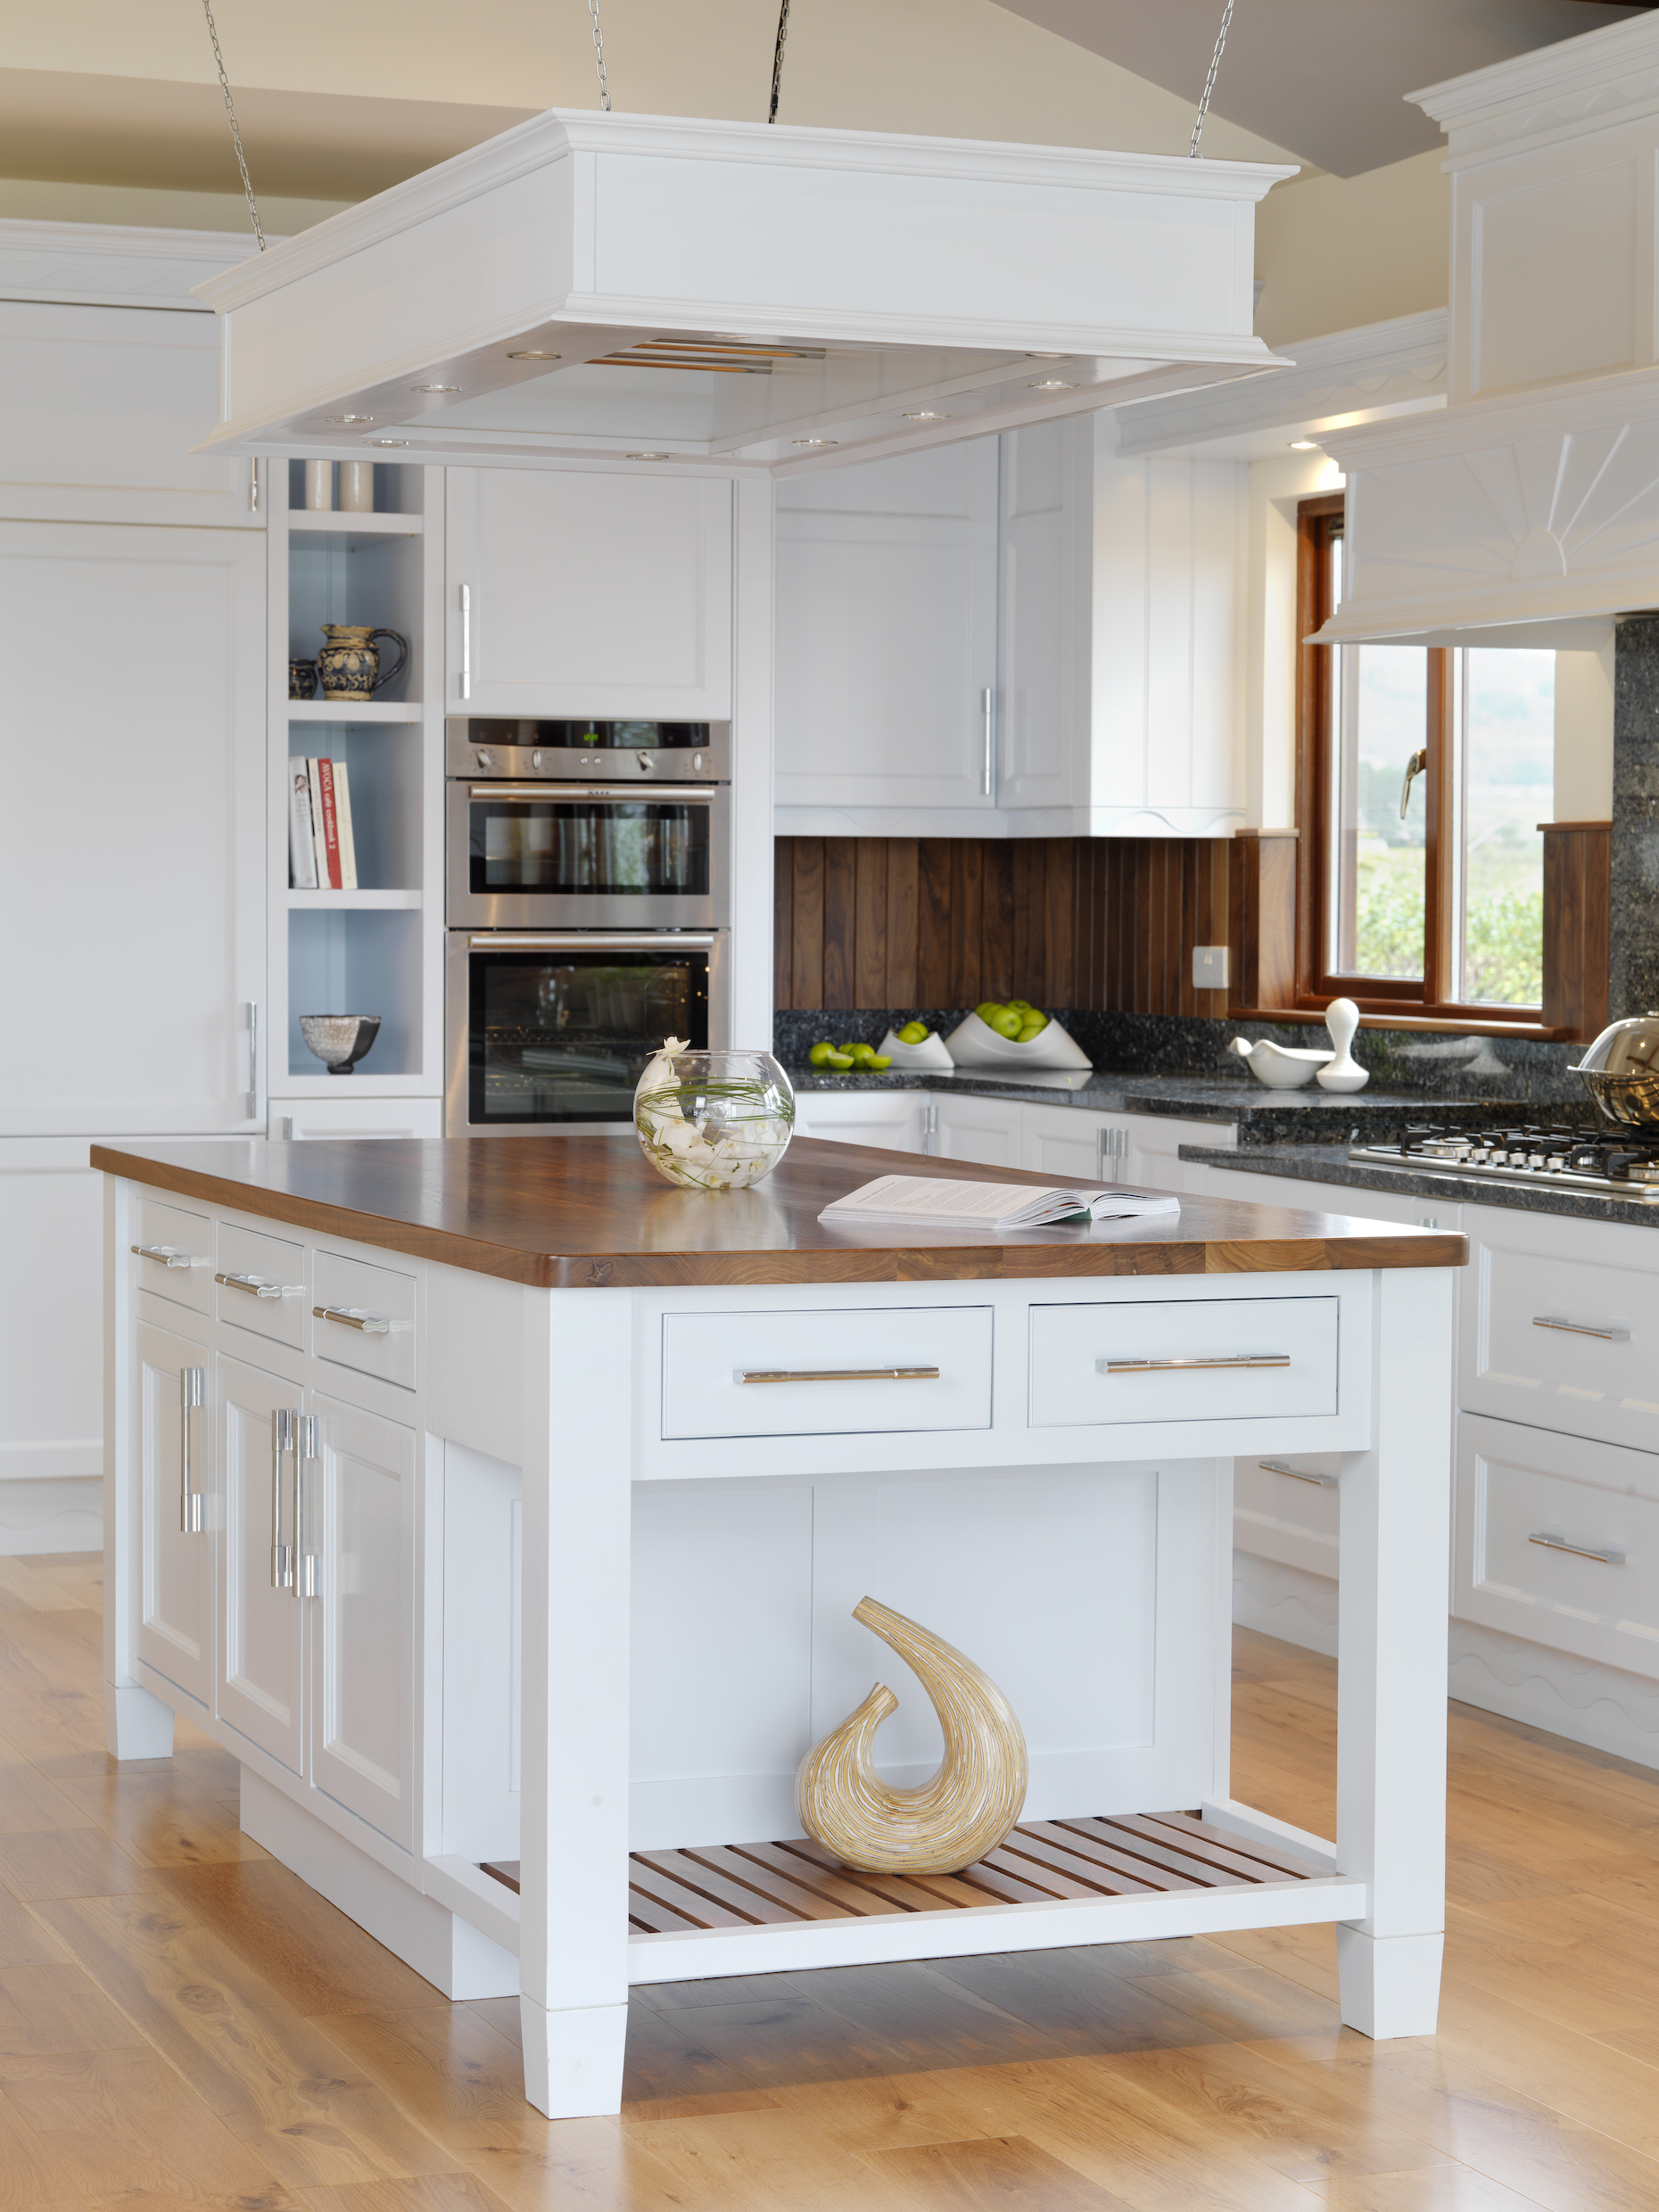 cabinets for a small kitchen photo - 1